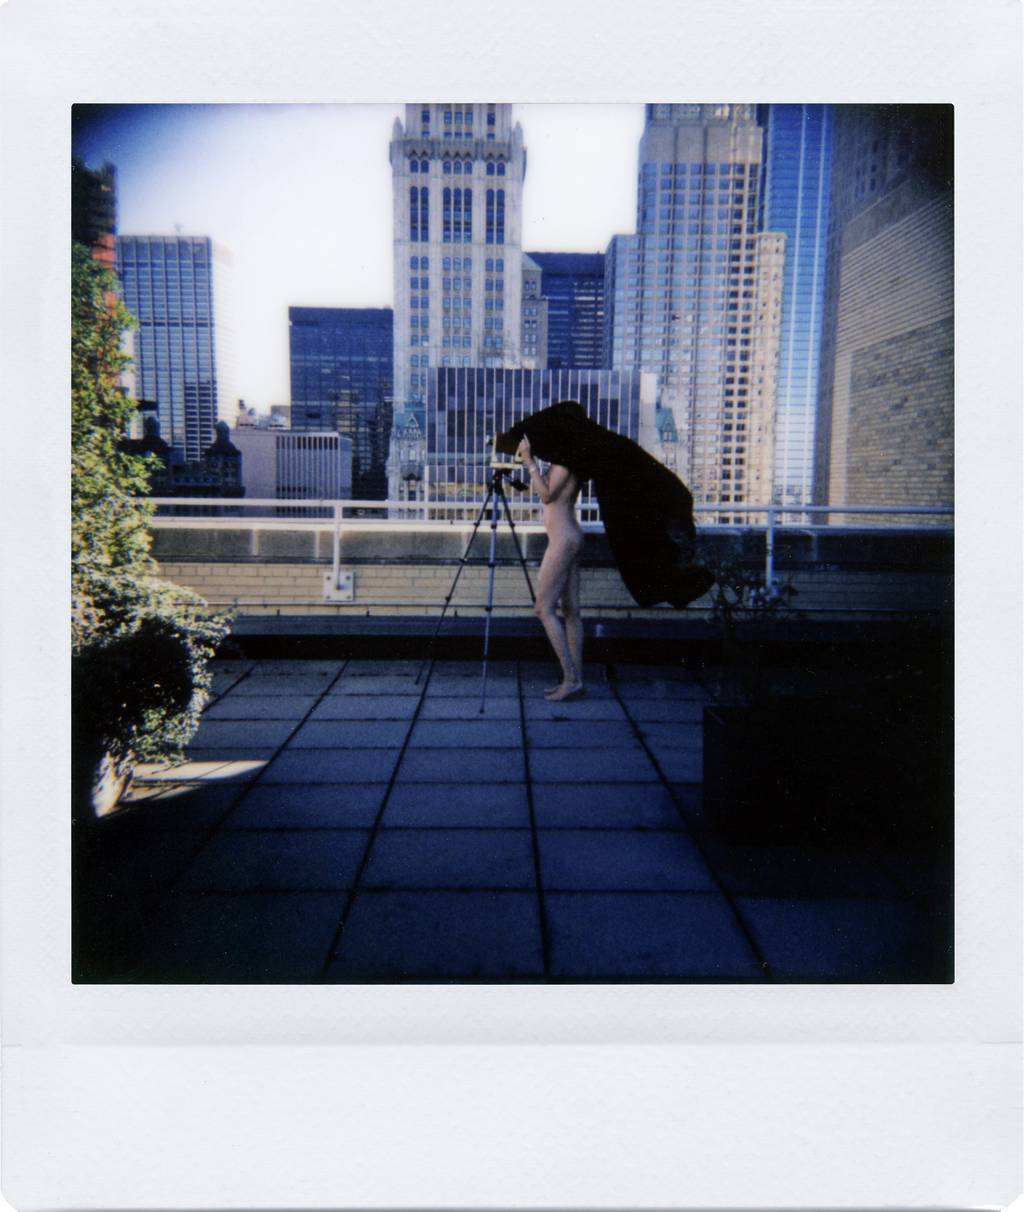 Paper + Work: A Diana Instant Square Series by B.A. Van Sise